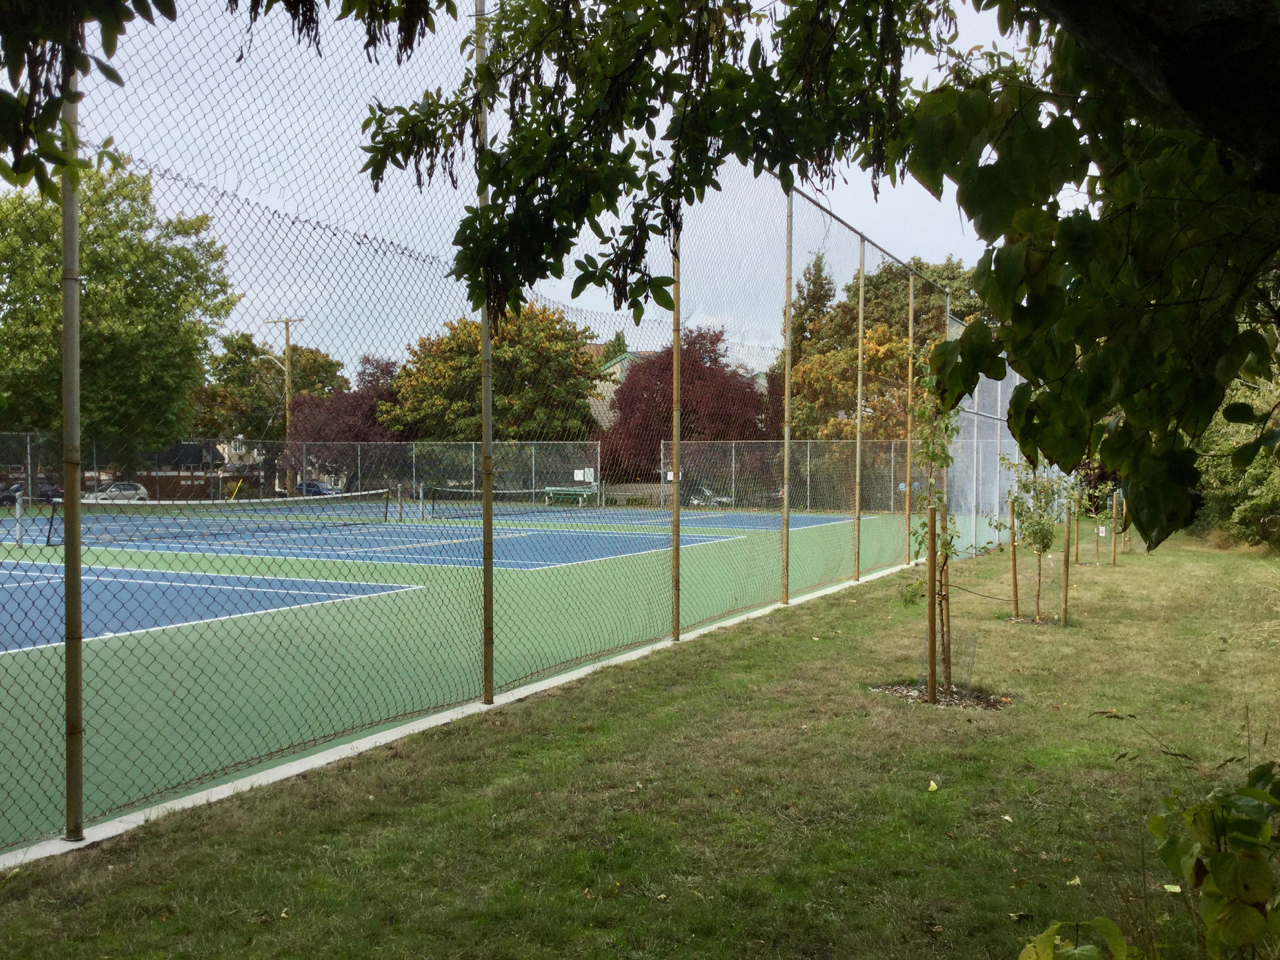 The tennis courts and fruit trees at Charles Redfern Green described in the letter above. Photo by Robert Hawkes.